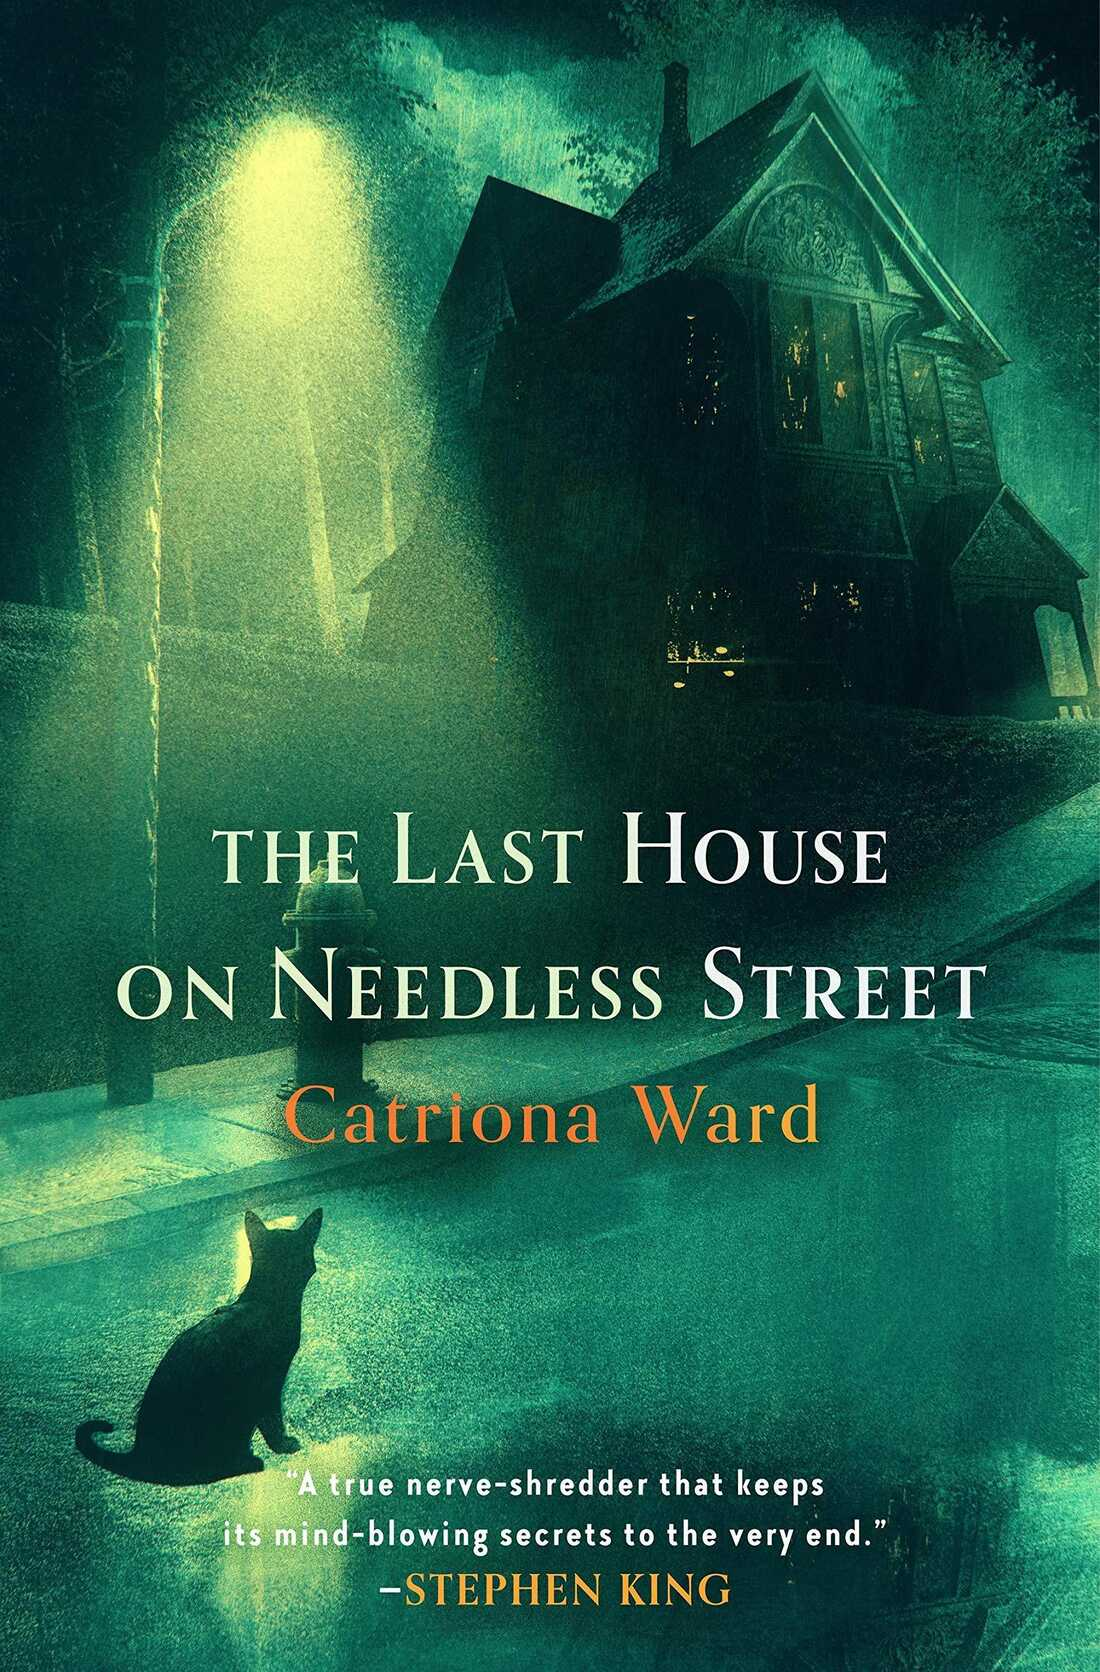 The Last House on Needless Street, by Catriona Ward